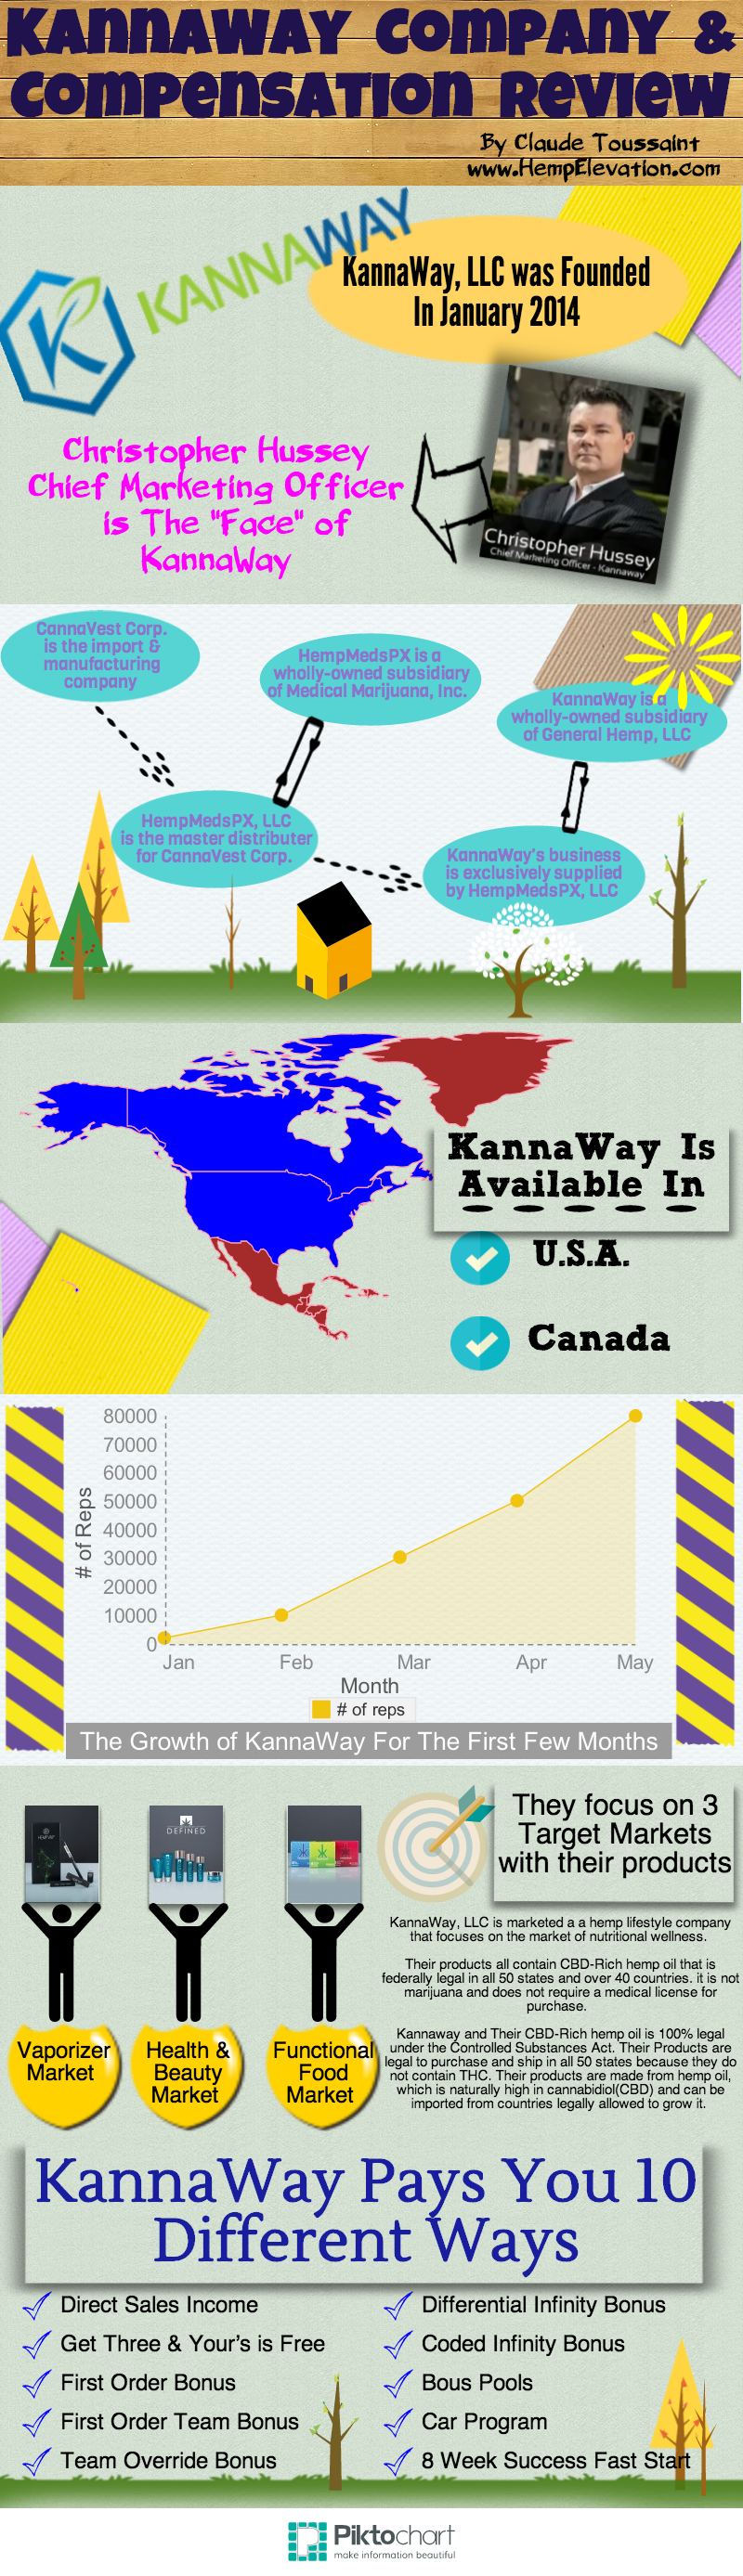 KannaWay Review Infographic